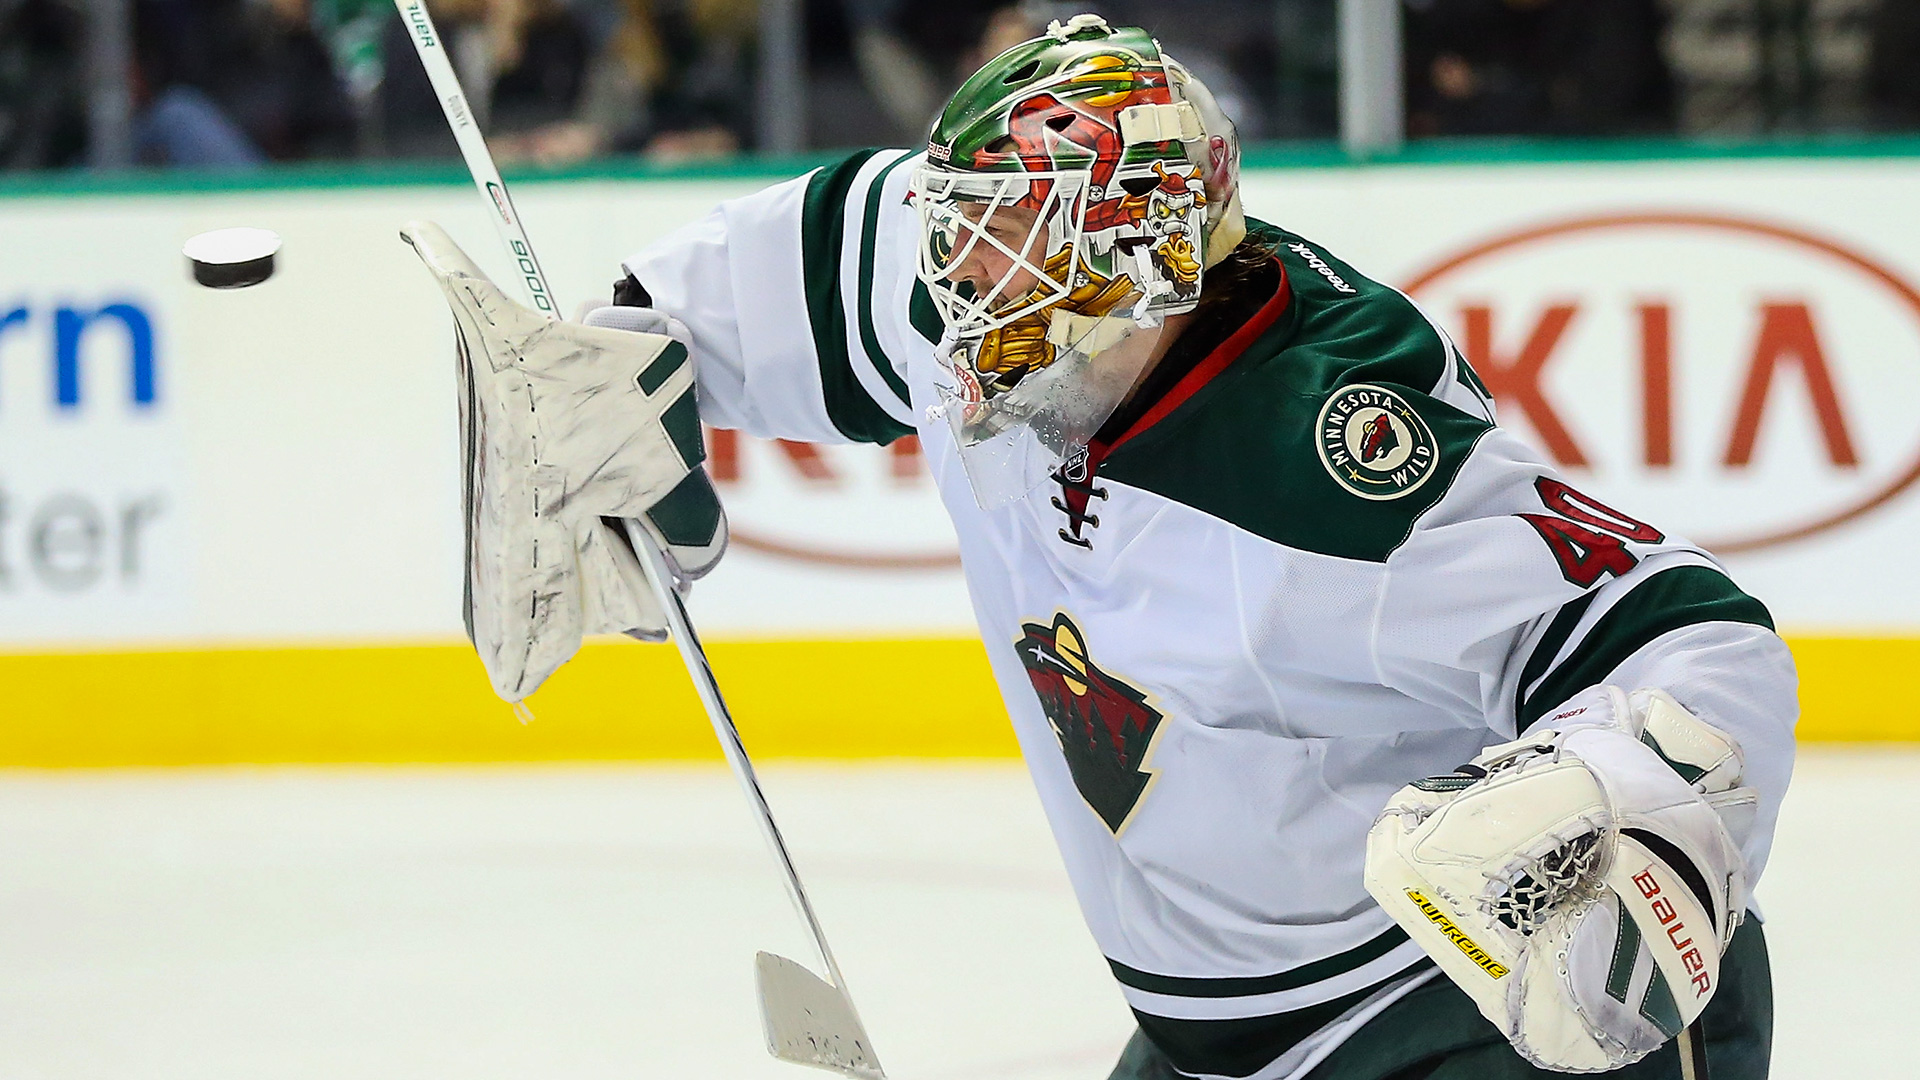 Granlund's second 3-goal game leads Wild past Predators 4-2